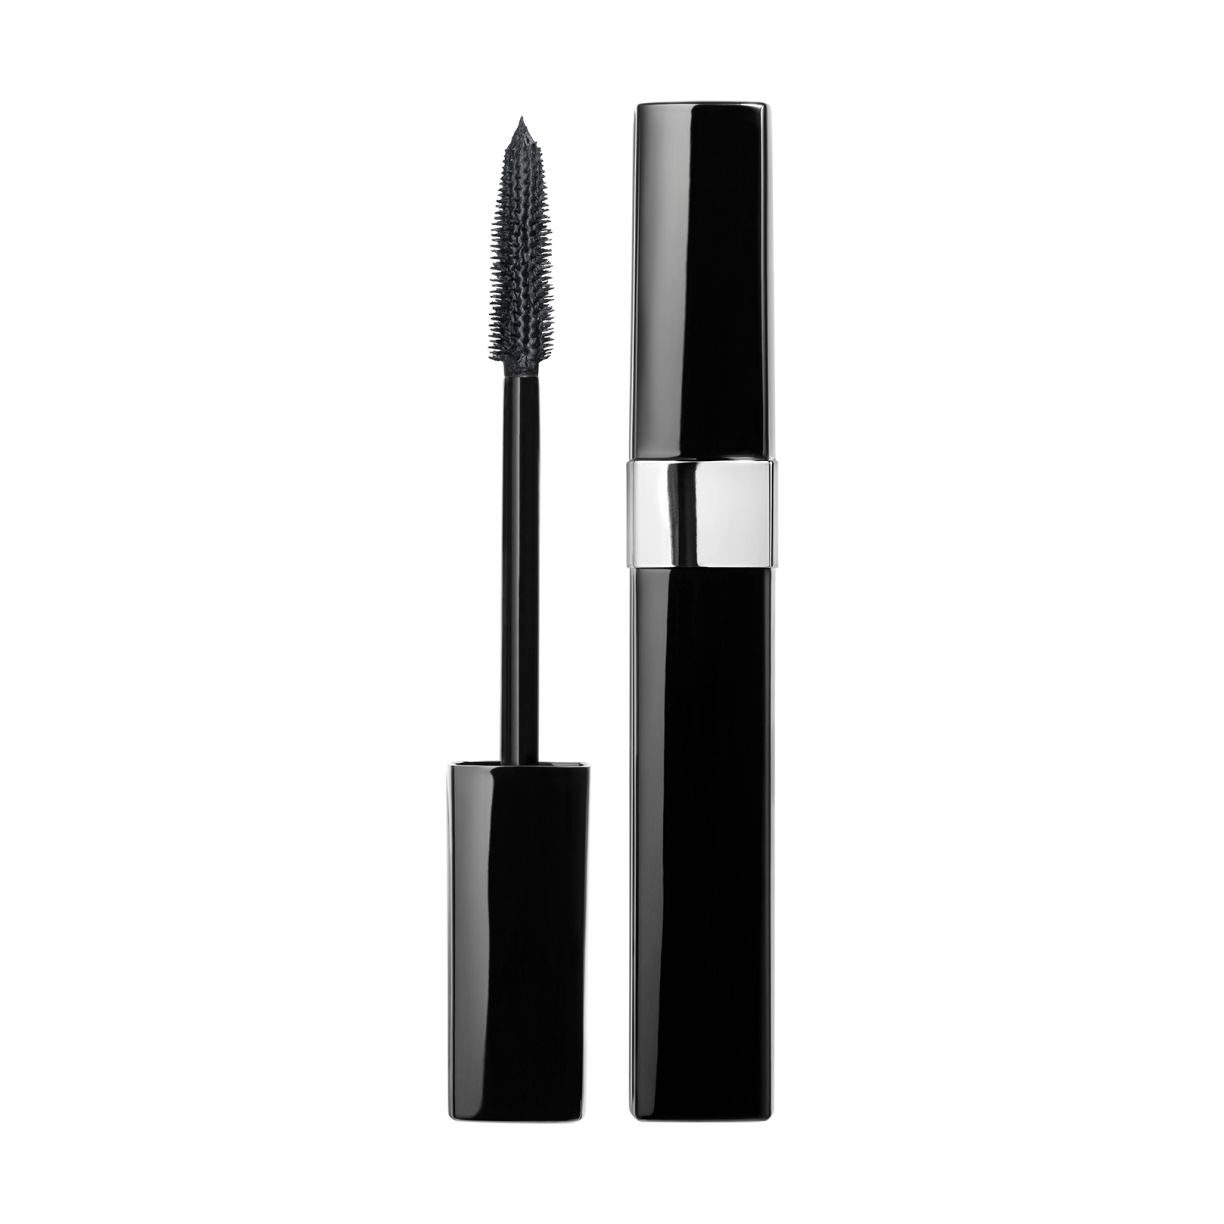 INIMITABLE INTENSE MASCARA VOOR EEN INTENS 3D-EFFECT